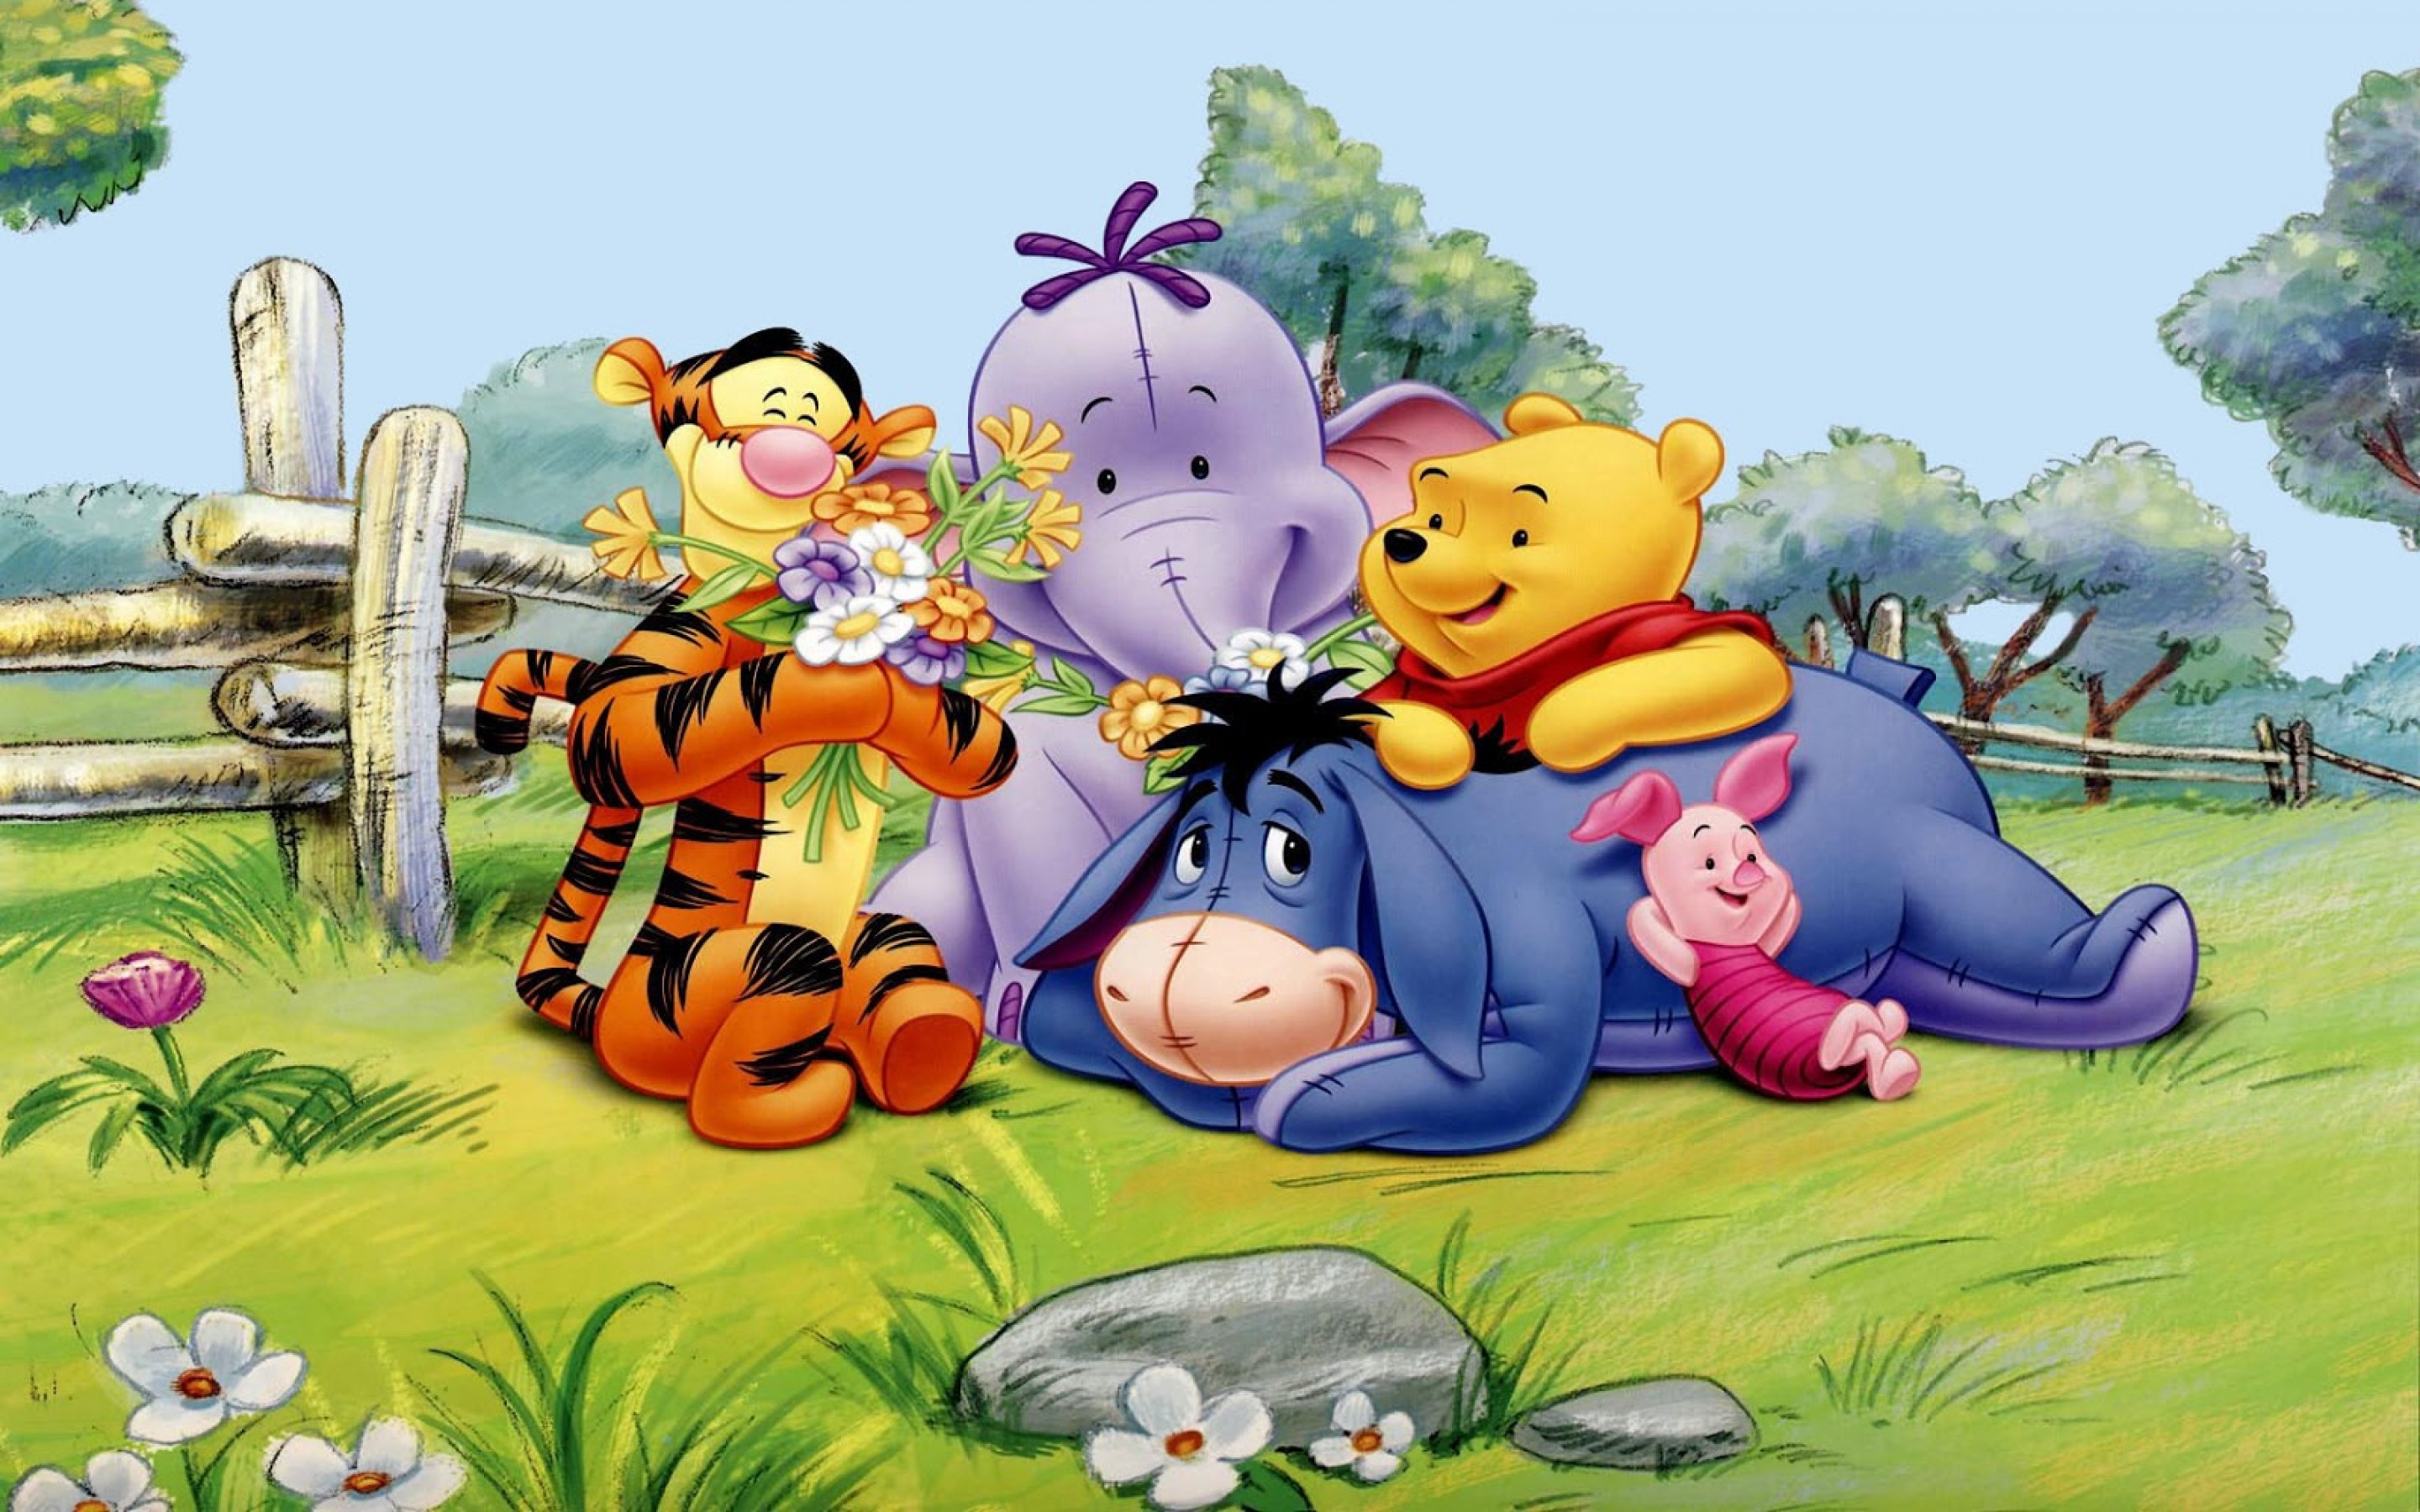 Cute Pooh Bear Wallpapers Winnie The Pooh Wallpaper High Quality 9490 Wallpaper